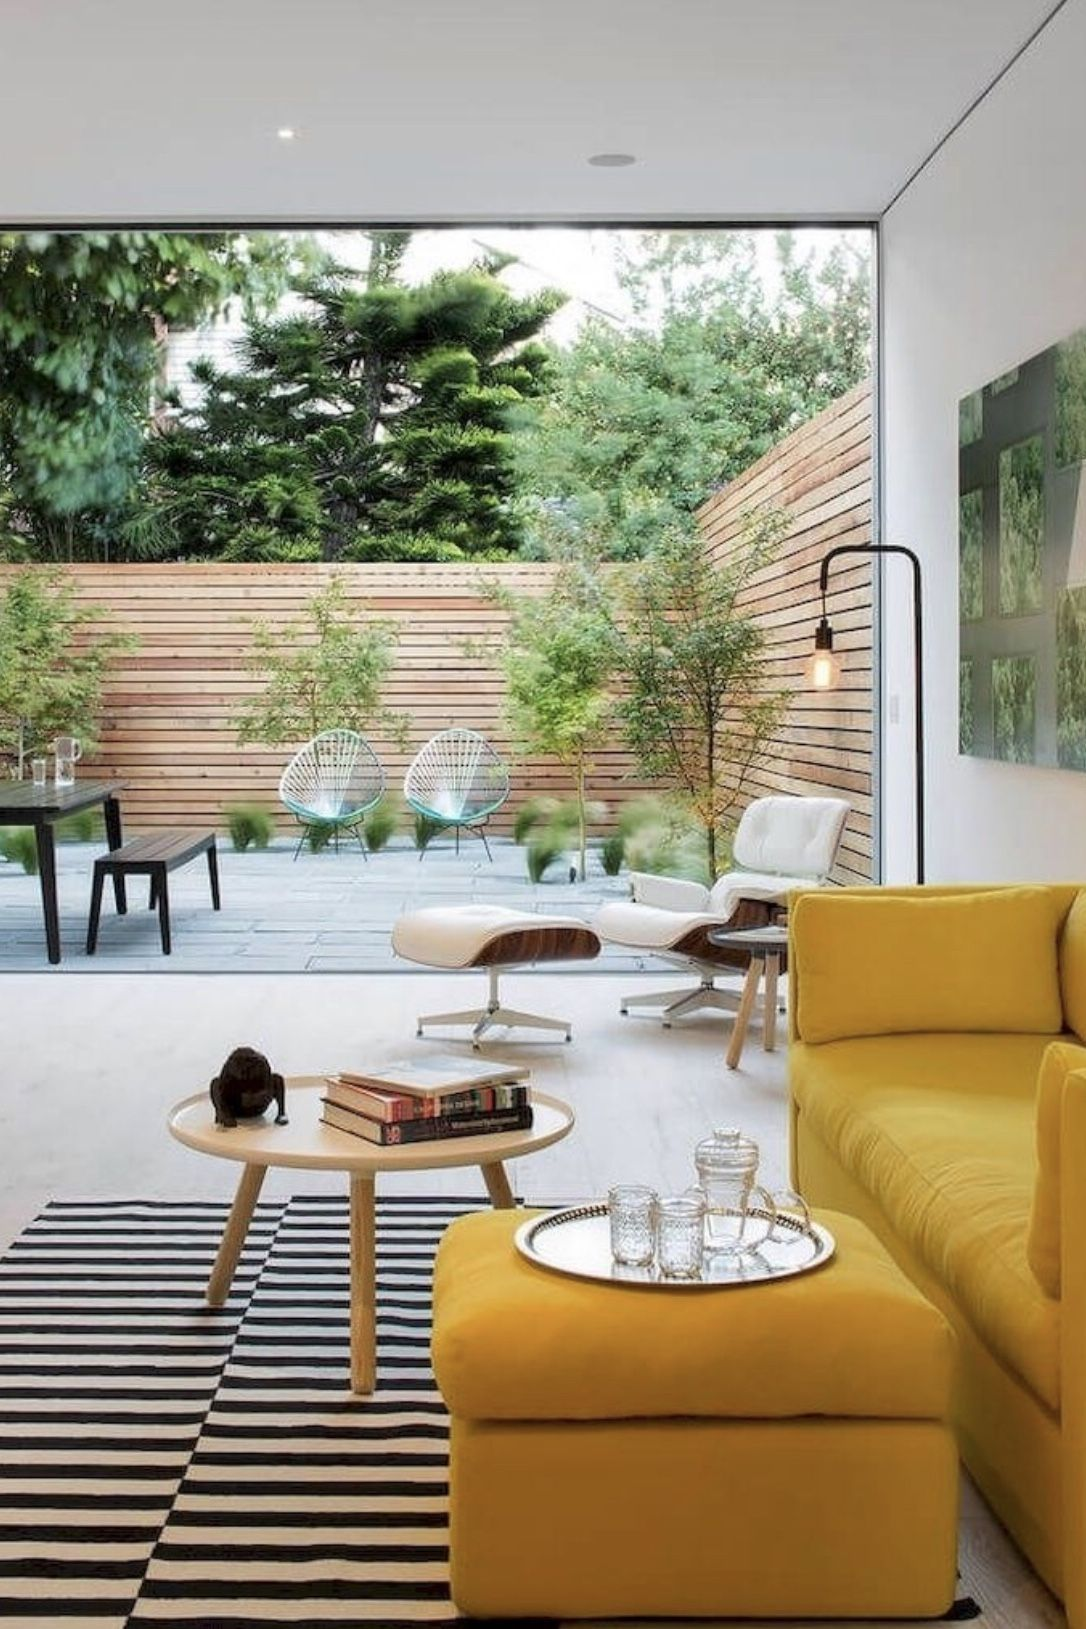 Pin On Furniture Outdoor #outdoor #living #room #designs